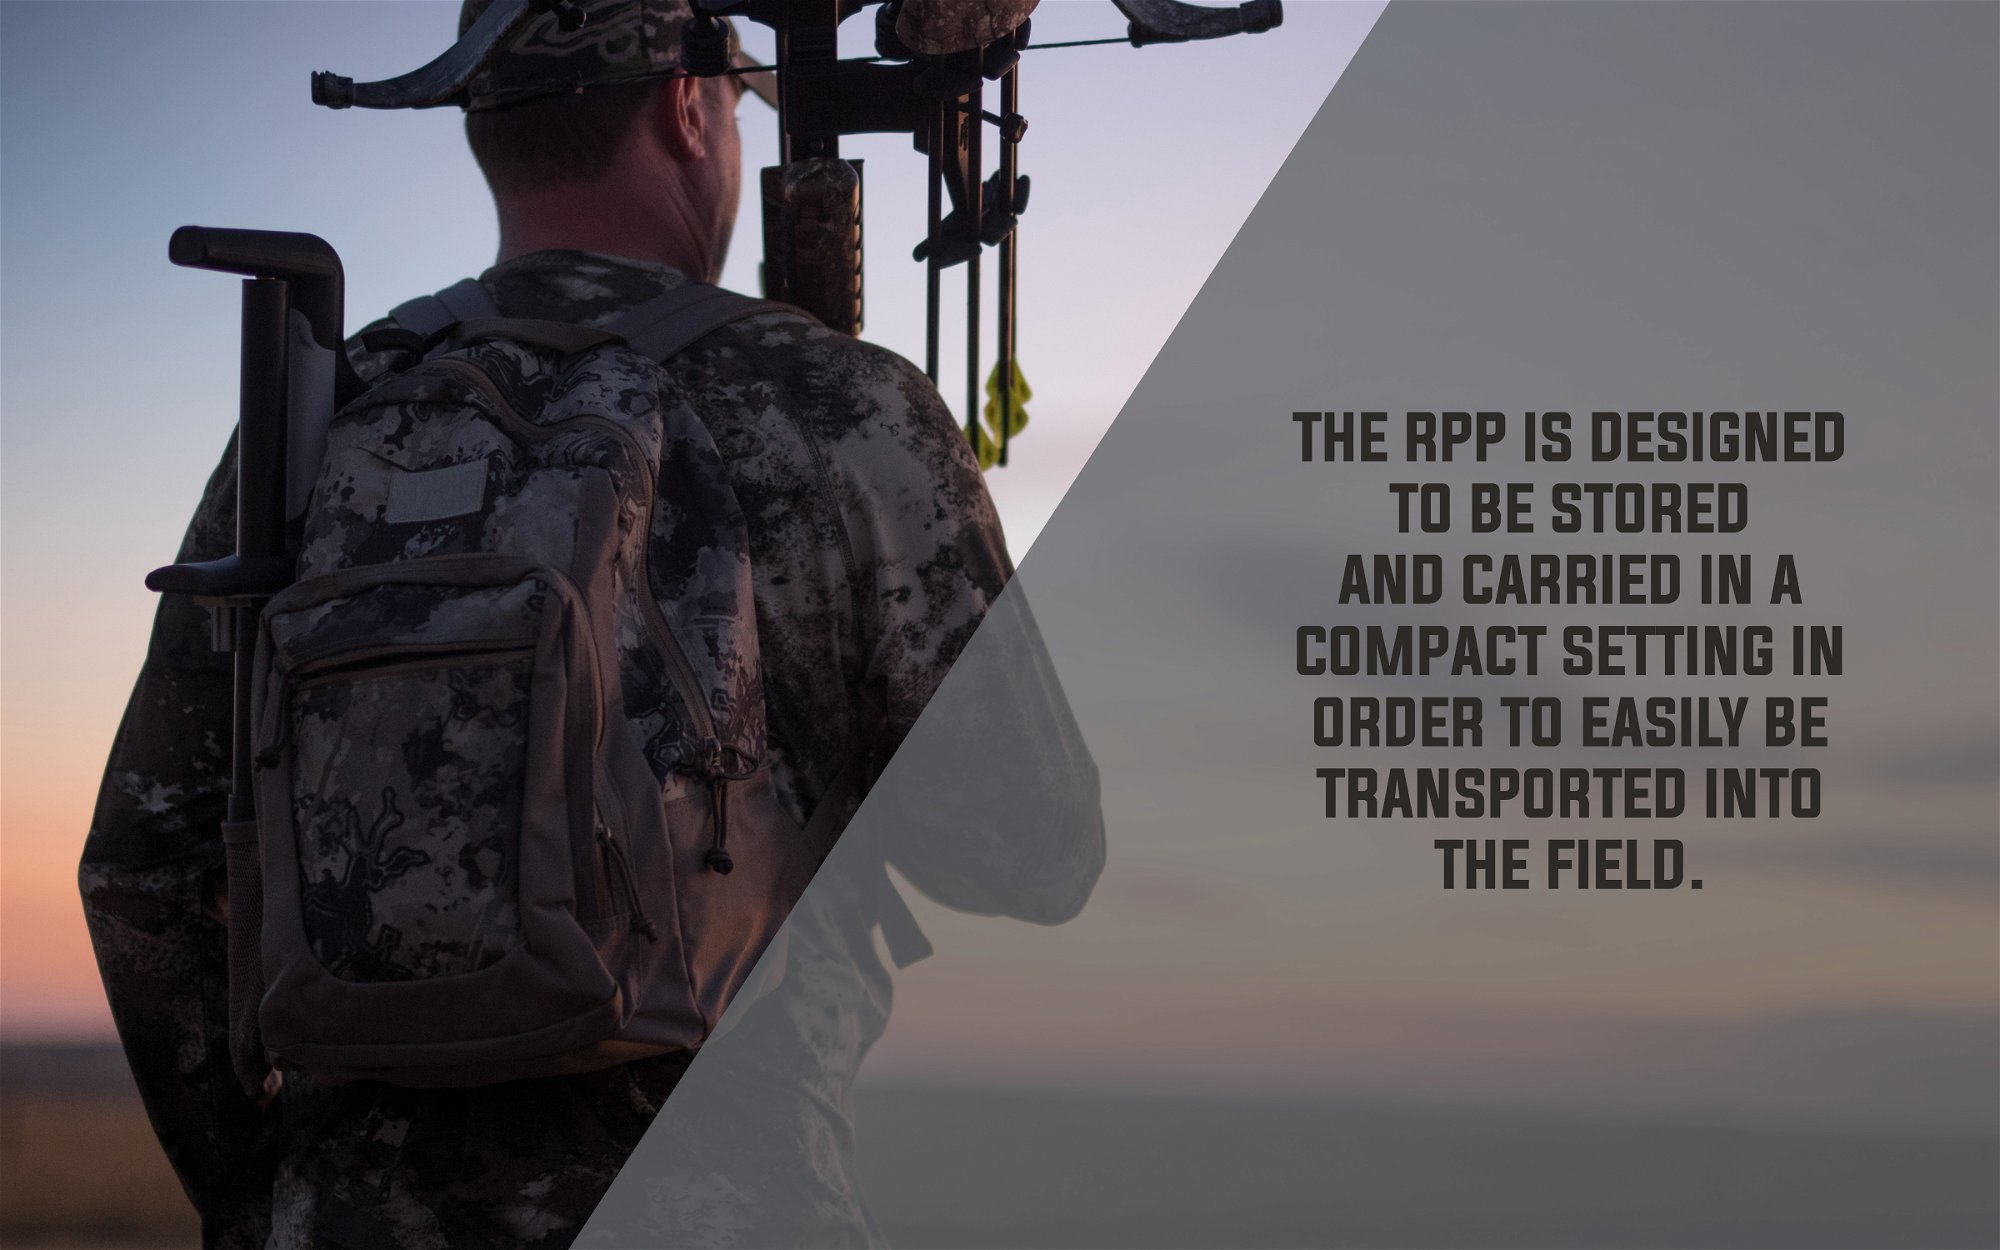 The RPP is designed to be stored and carried in a compact setting in order to easily be transported into the field.